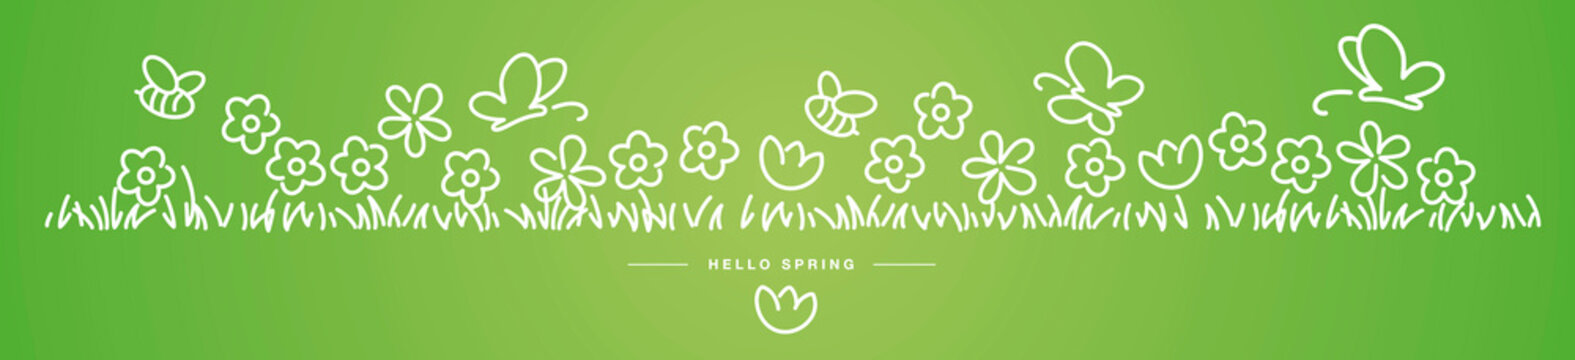 Hello Spring background, banner, pattern handwritten design with bees, butterflies and colorful spring flowers in grass green isolated